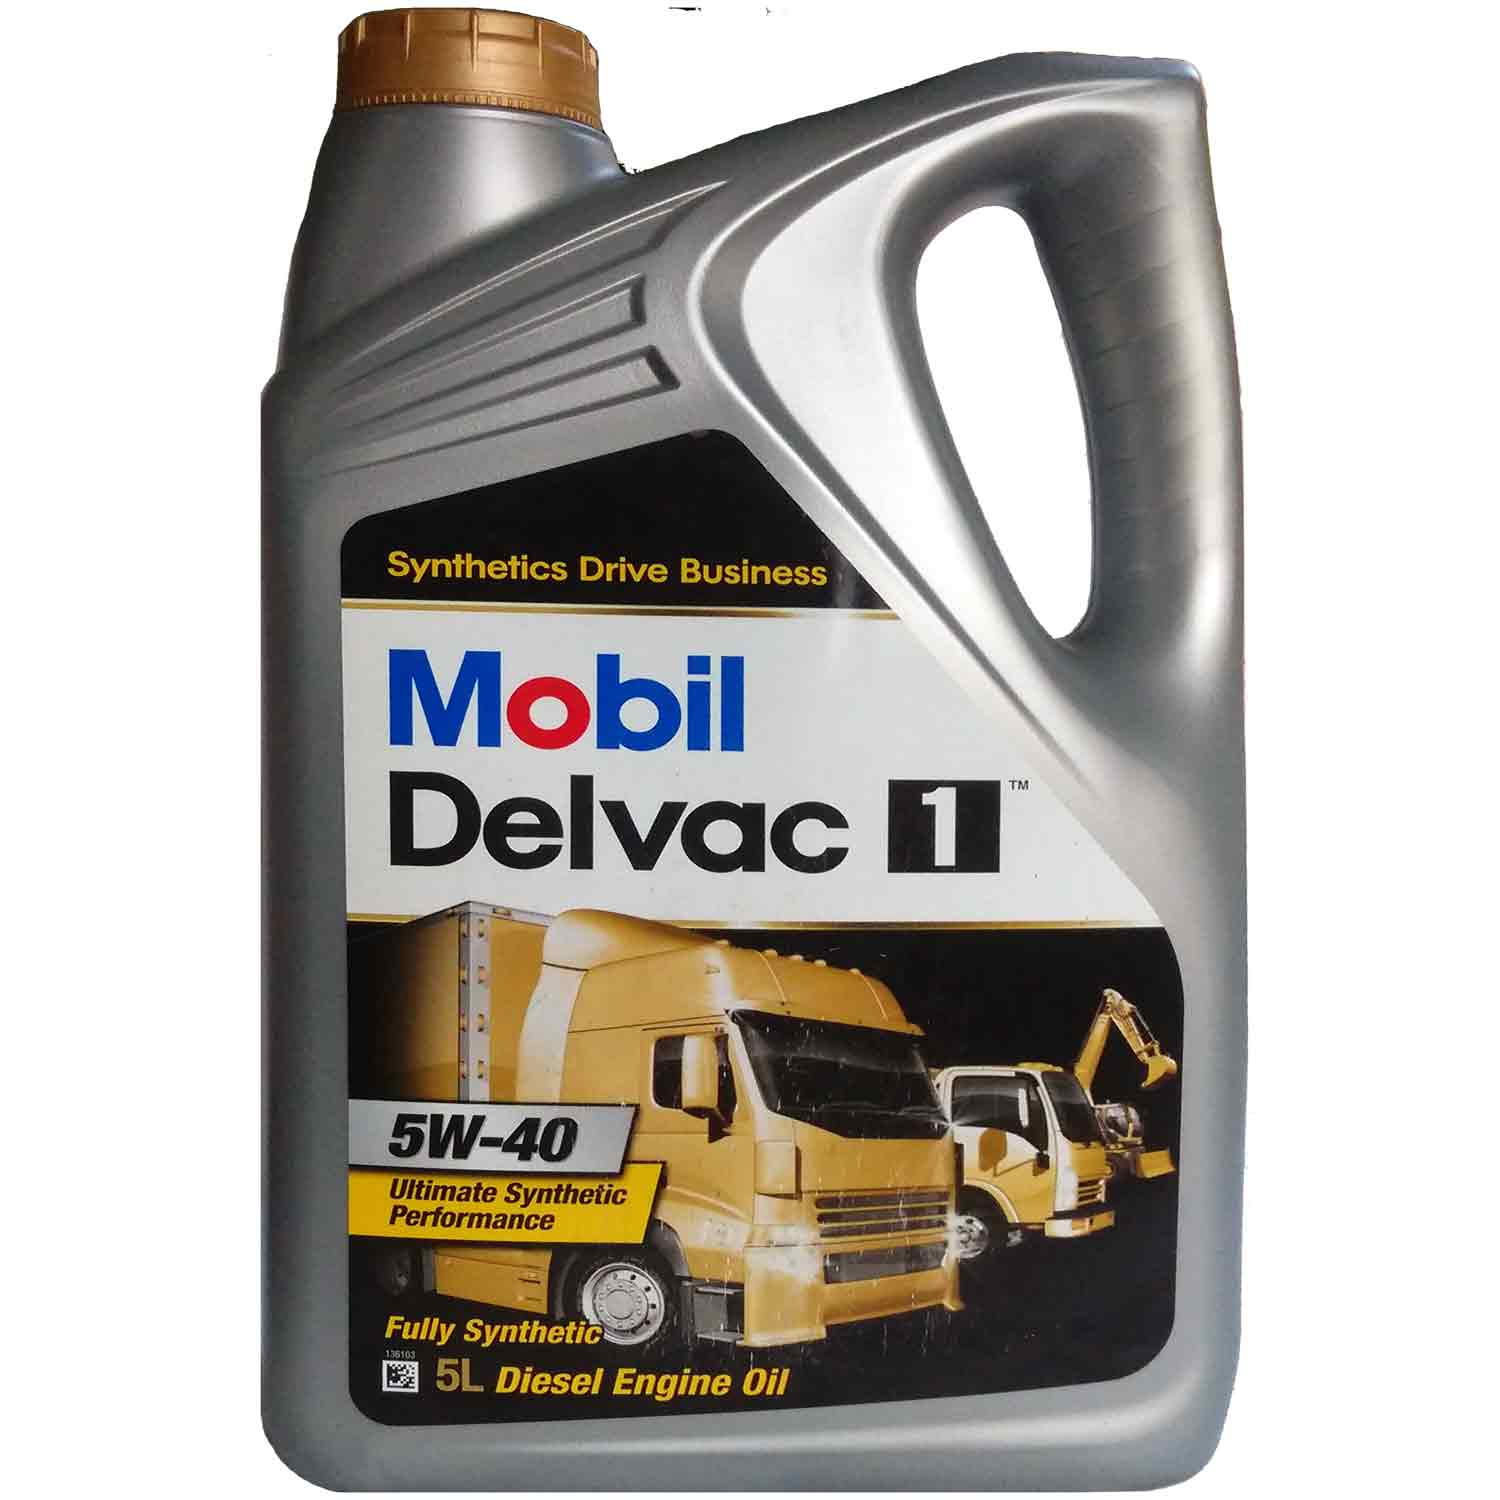 5 W 40 Mobil Delvac 1 5w 40 Fully Synthetic Diesel Engine Oil 5l Pack